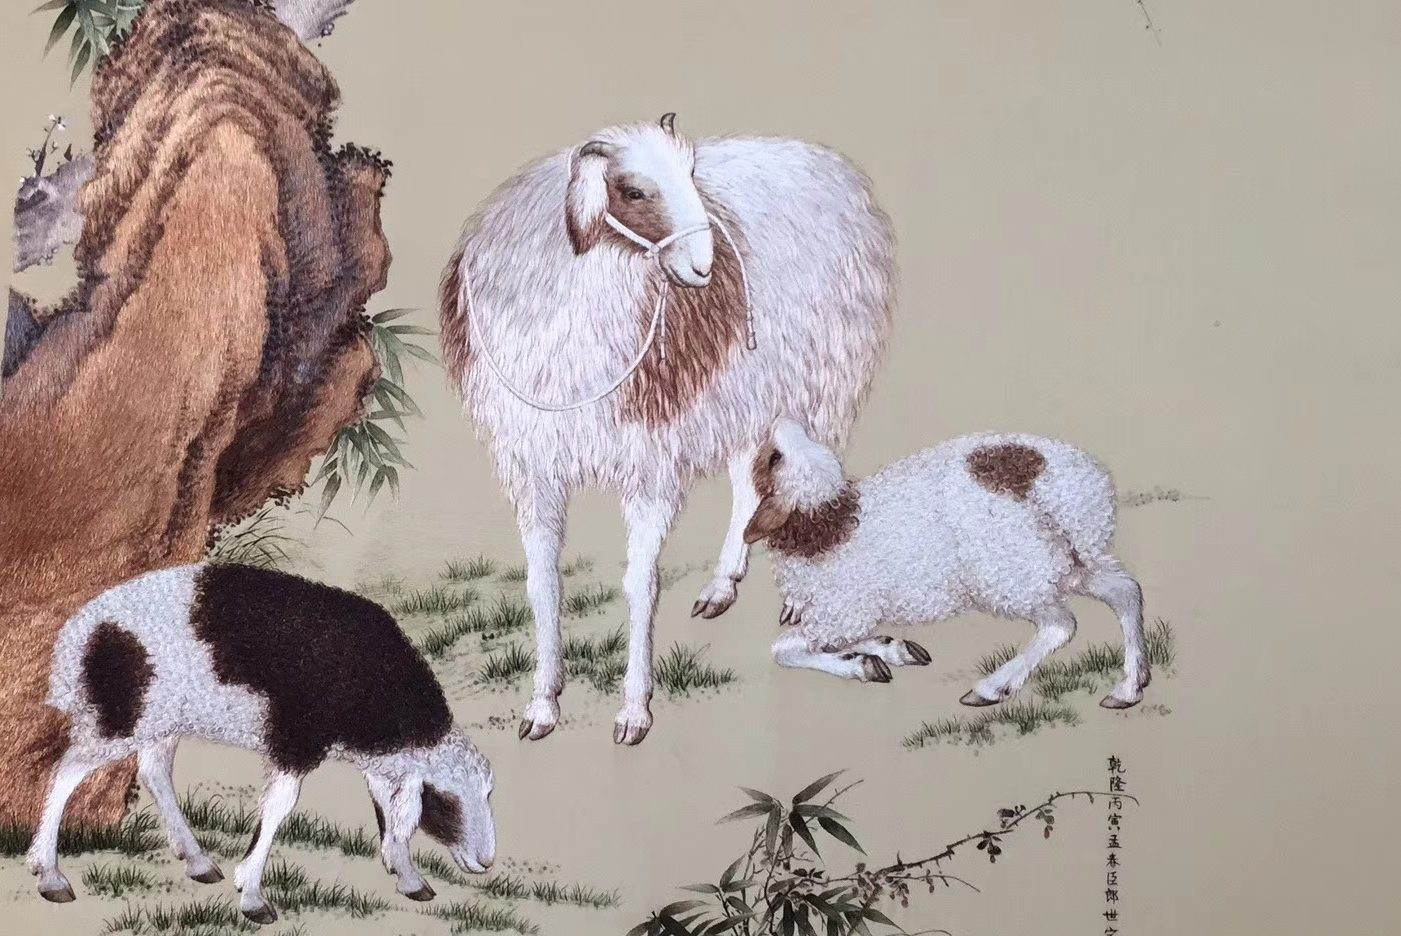 Chinese handicraft-embroidery artworks